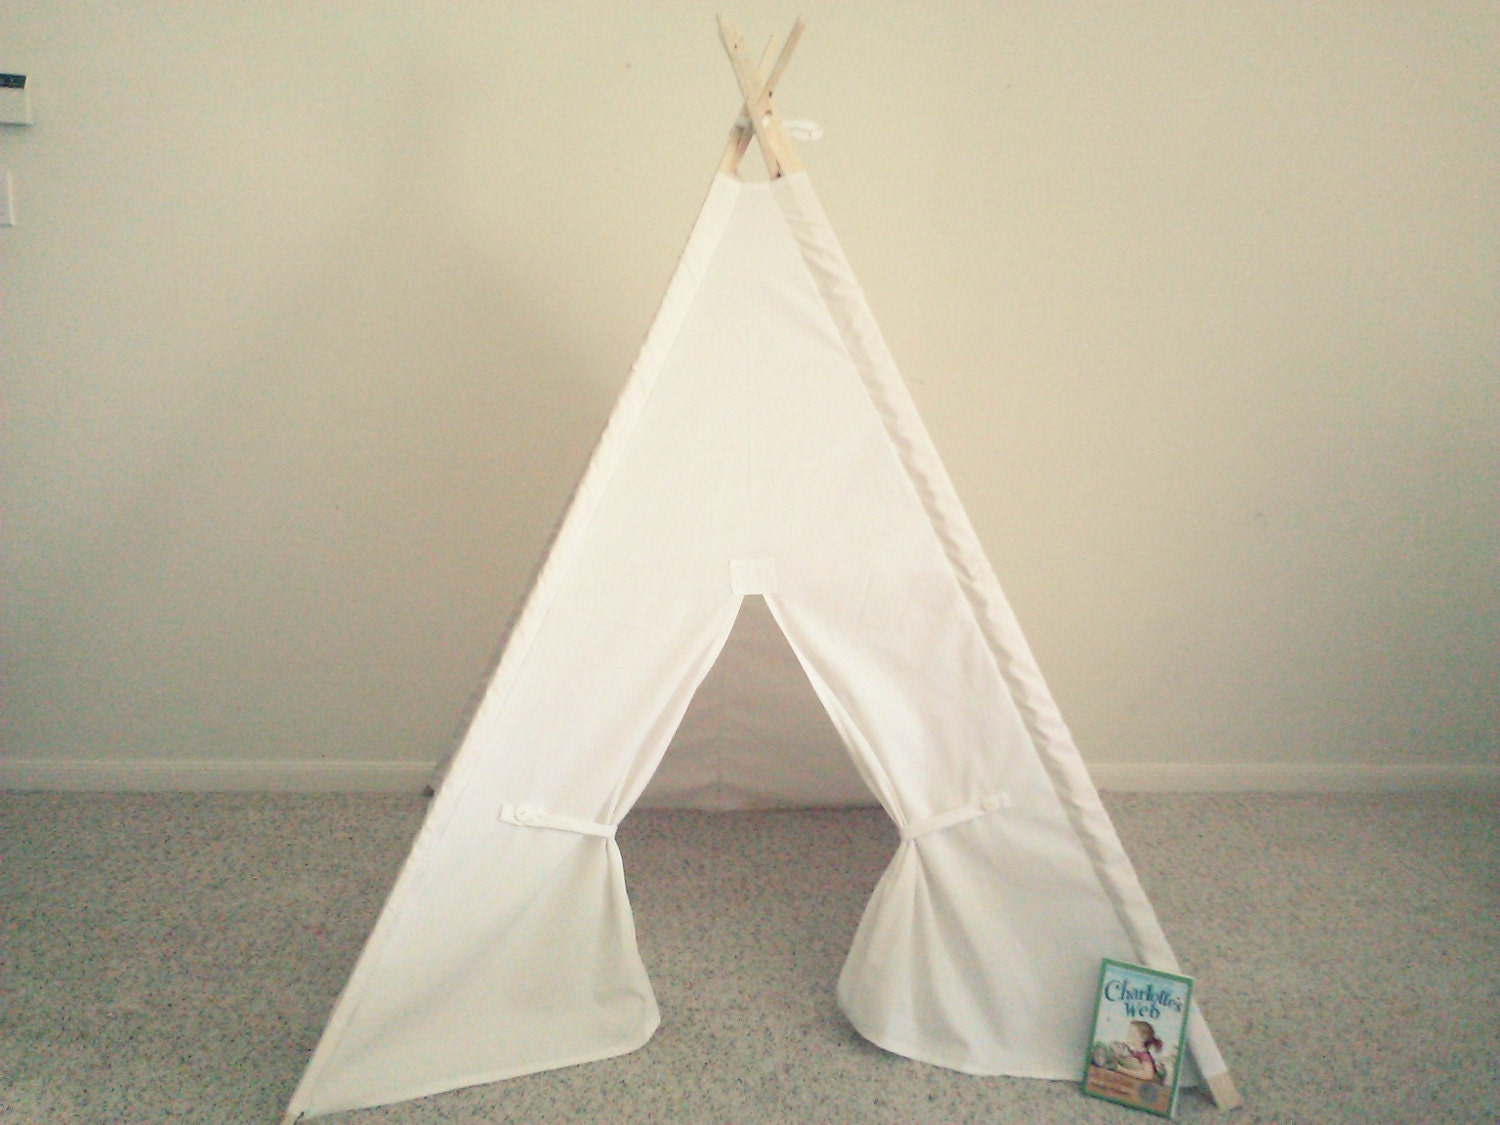 & White Teepee Canvas Tent White Tipi Wigwam or Kids Fort the | Etsy